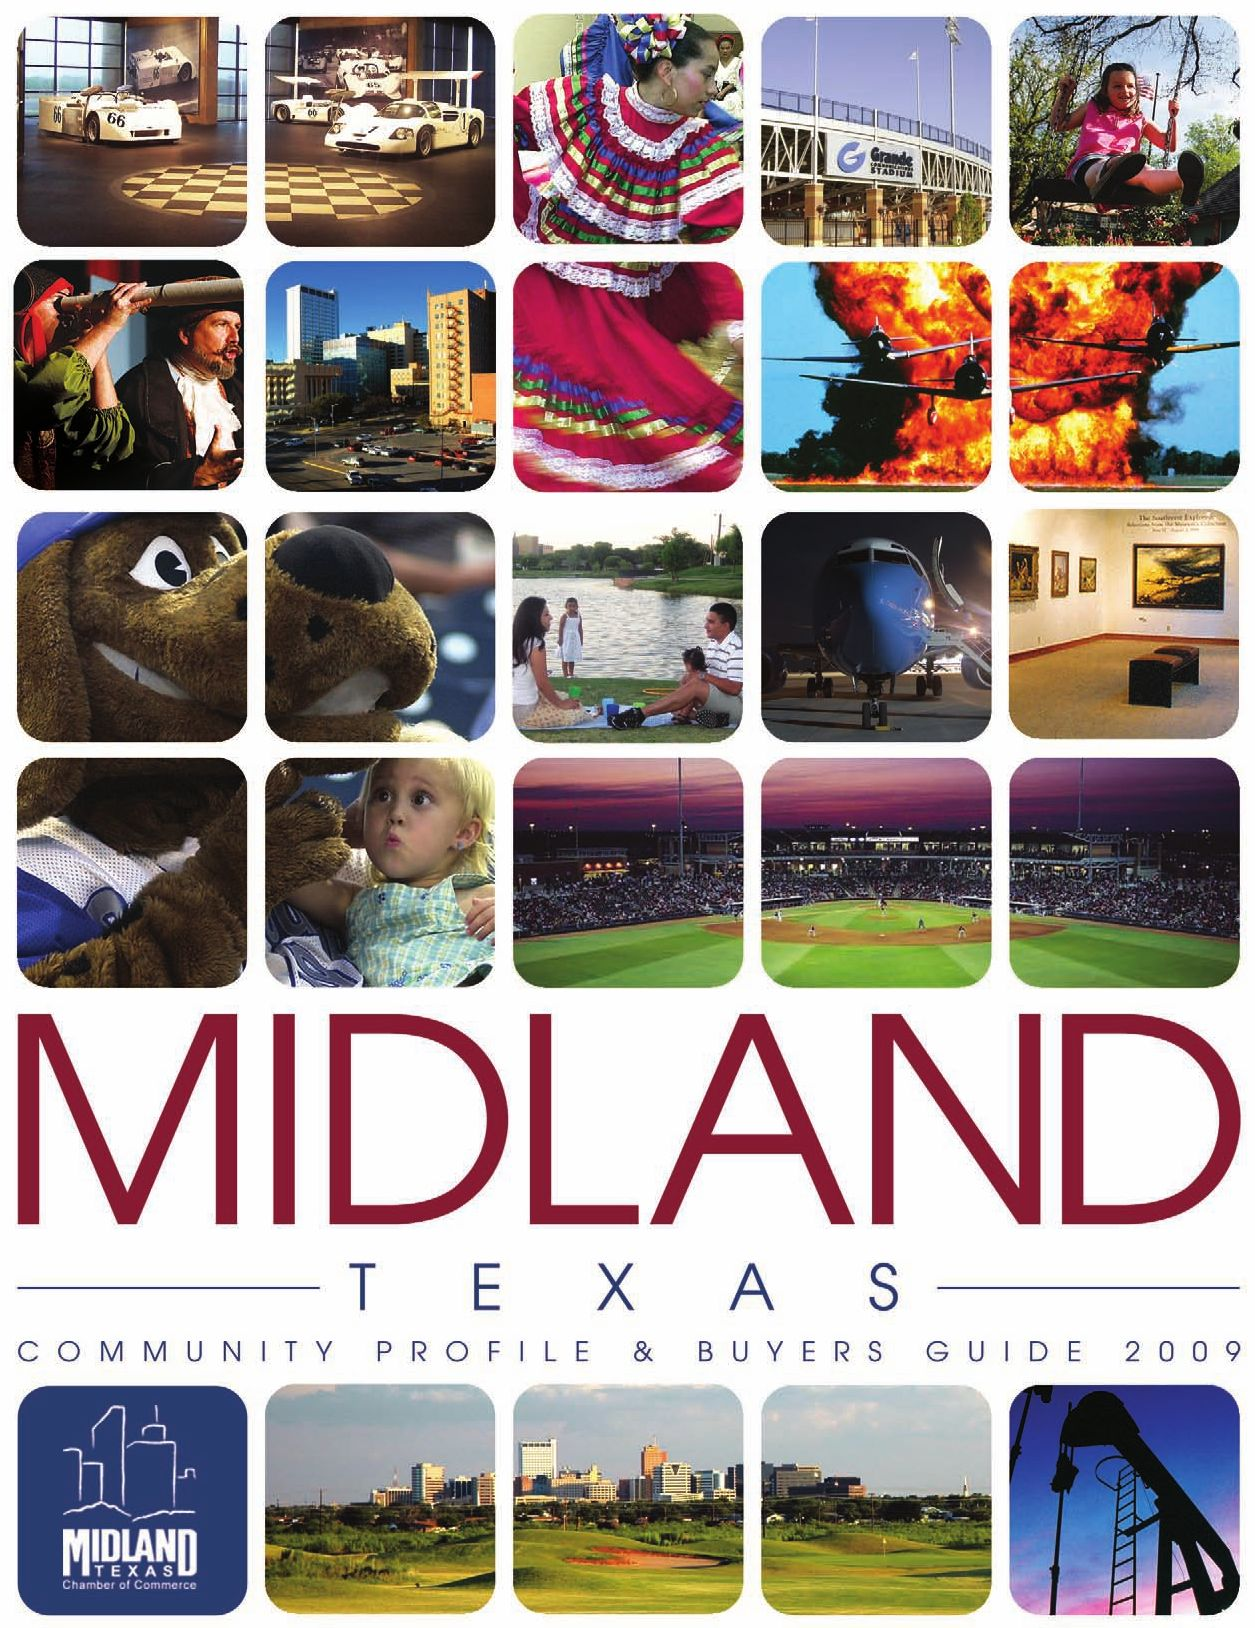 midland tx 2009 community profile and buyers guide by tivoli design media group issuu